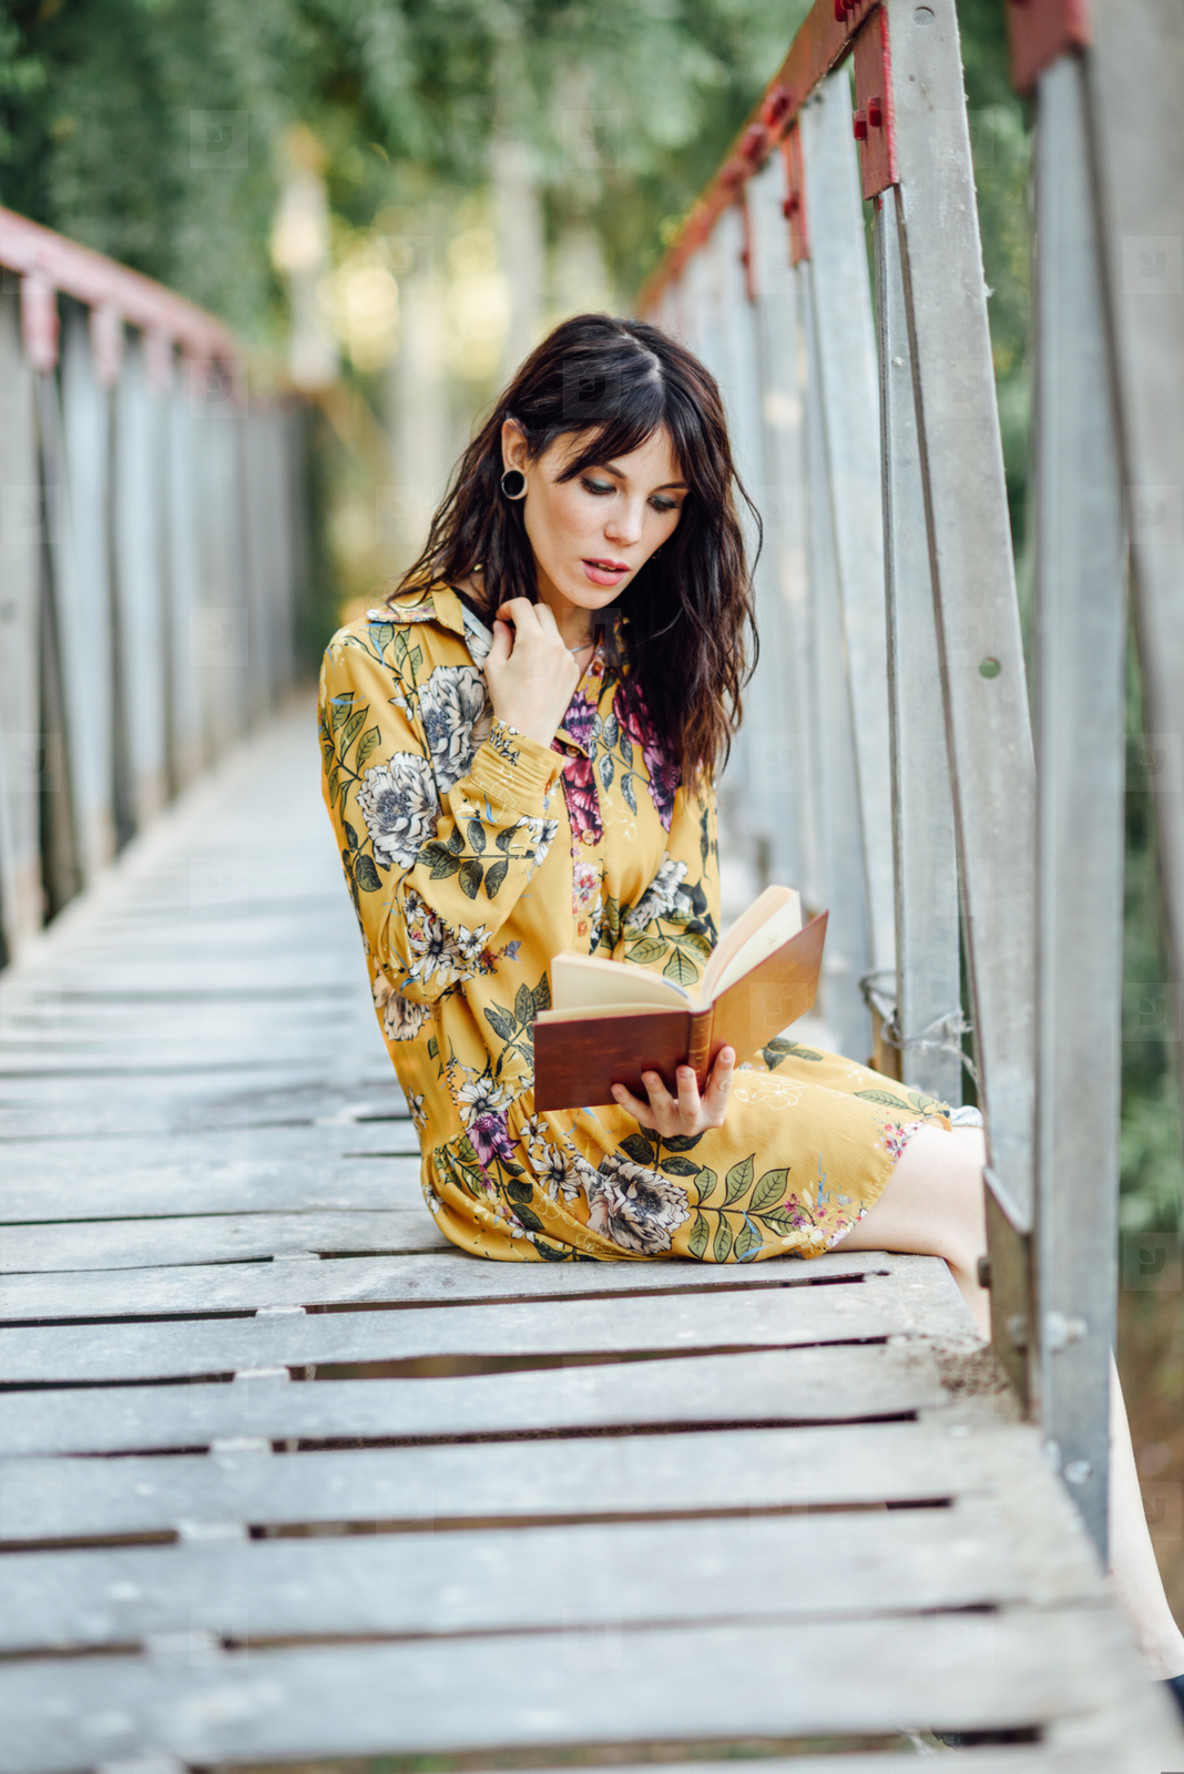 Young woman reading a book on a rural bridge